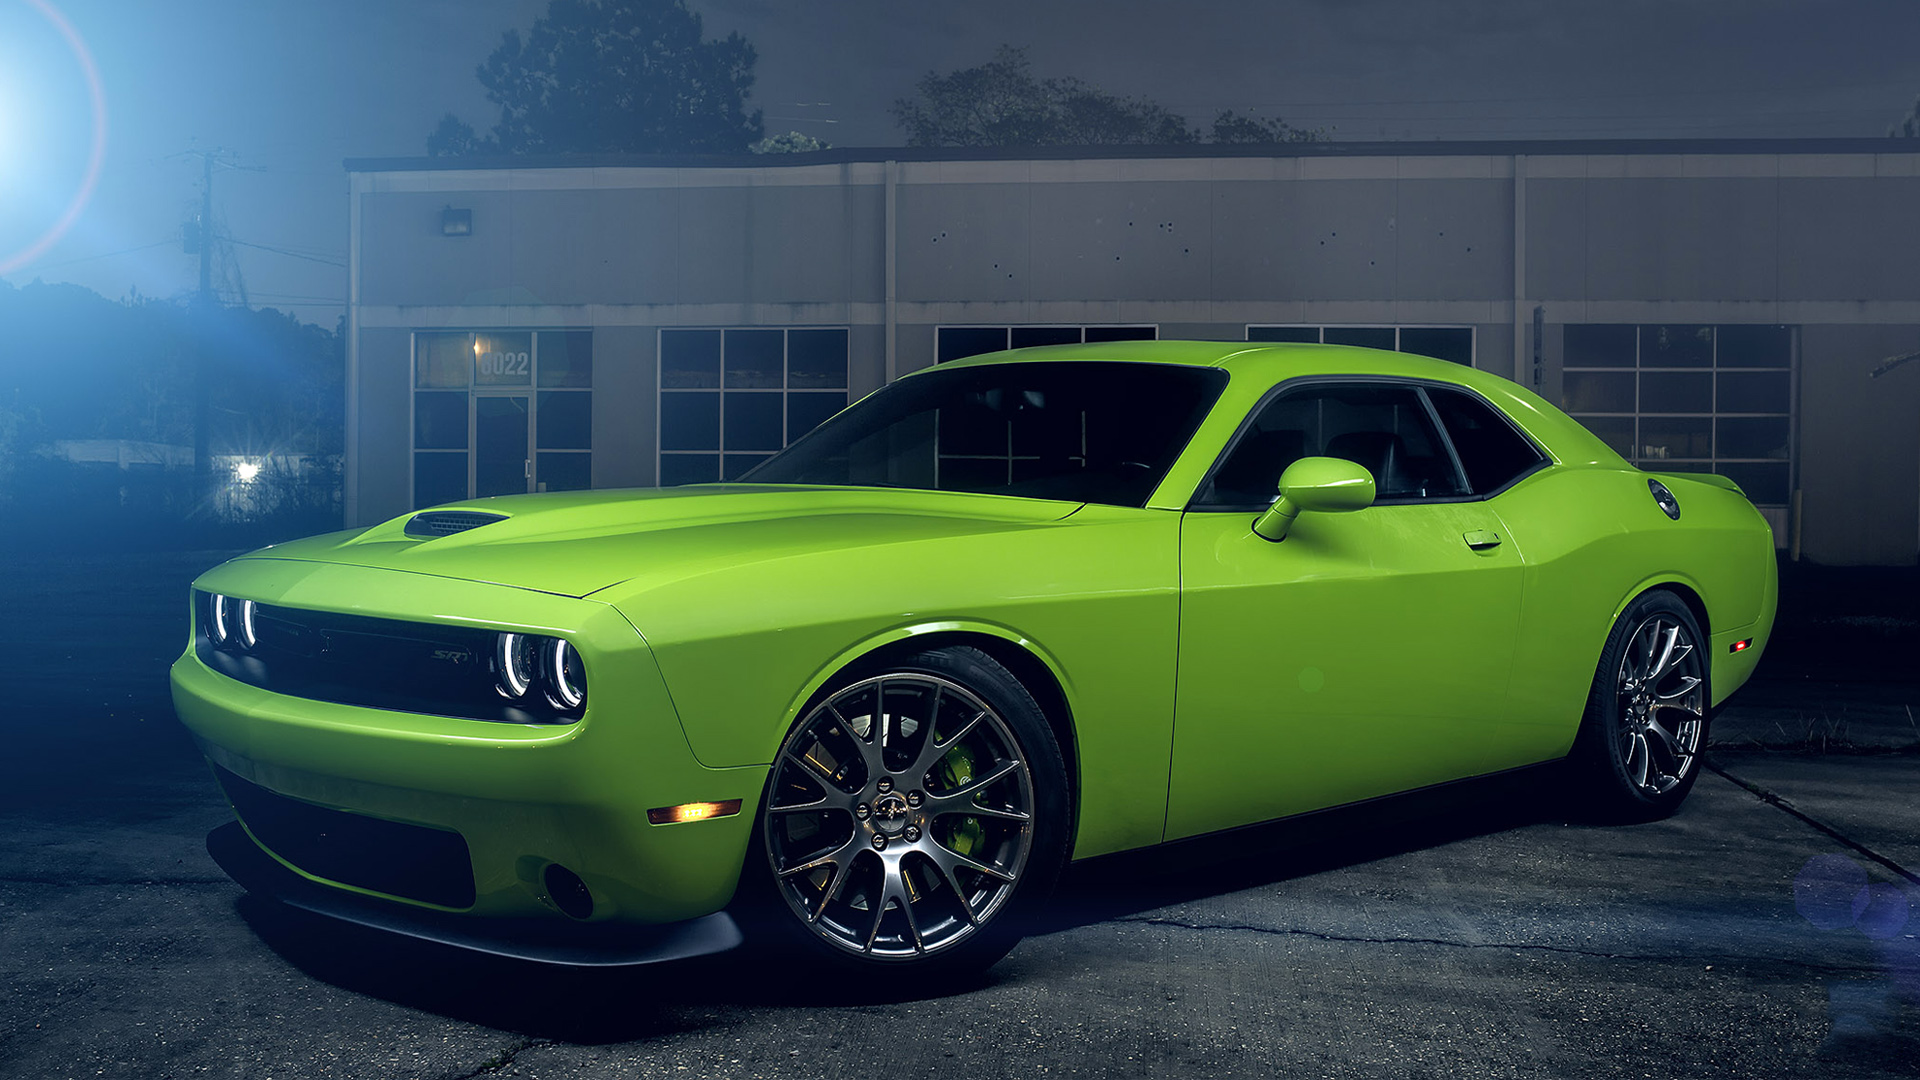 When a build combines two of the car world's greatest treasures, it's sure to raise some eyebrows. Dodge Challenger Srt Hellcat Greenrelated Car Wallpapers Wallpaper Cars Wallpaper Better